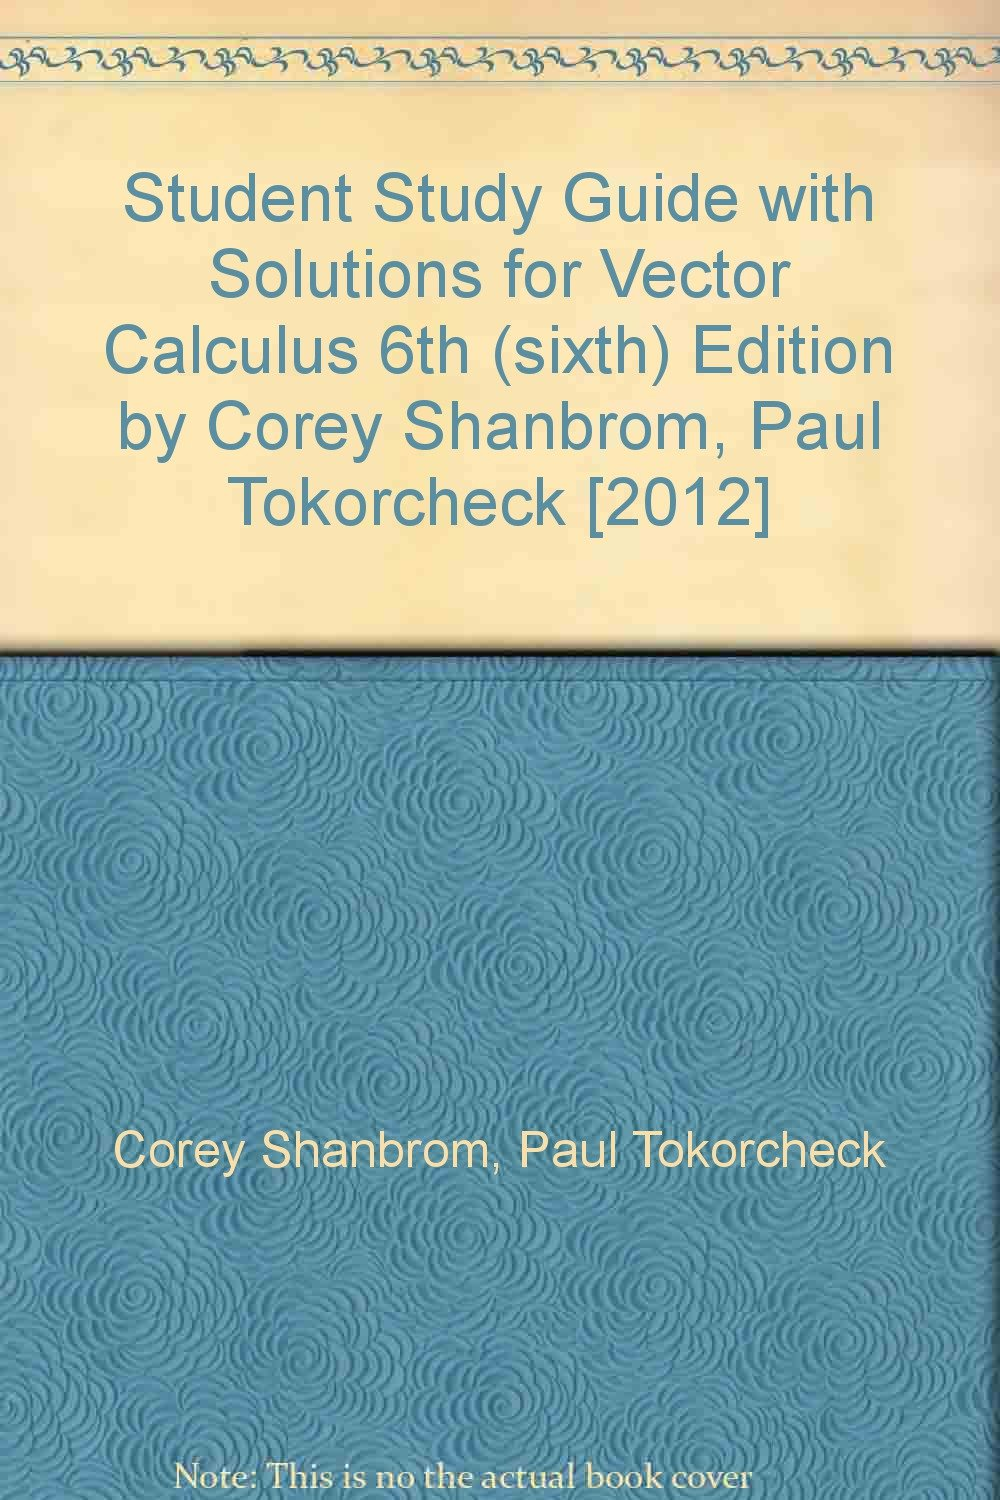 Student Study Guide with Solutions for Vector Calculus 6th (sixth) Edition  by Corey Shanbrom, Paul Tokorcheck [2012]: Amazon.com: Books